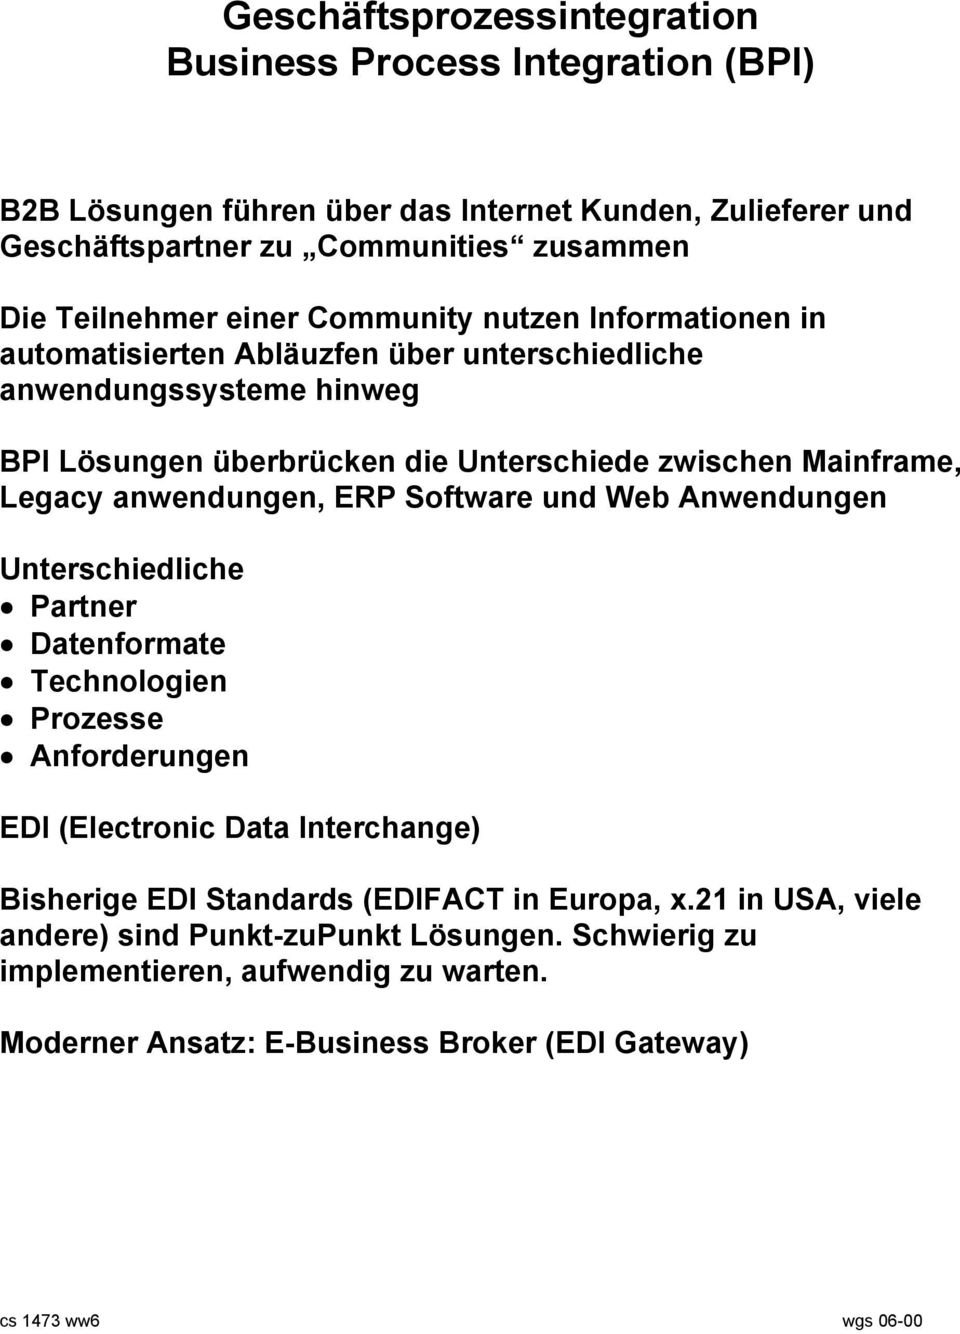 anwendungen, ERP Software und Web Anwendungen Unterschiedliche Partner Datenformate Technologien Prozesse Anforderungen EDI (Electronic Data Interchange) Bisherige EDI Standards